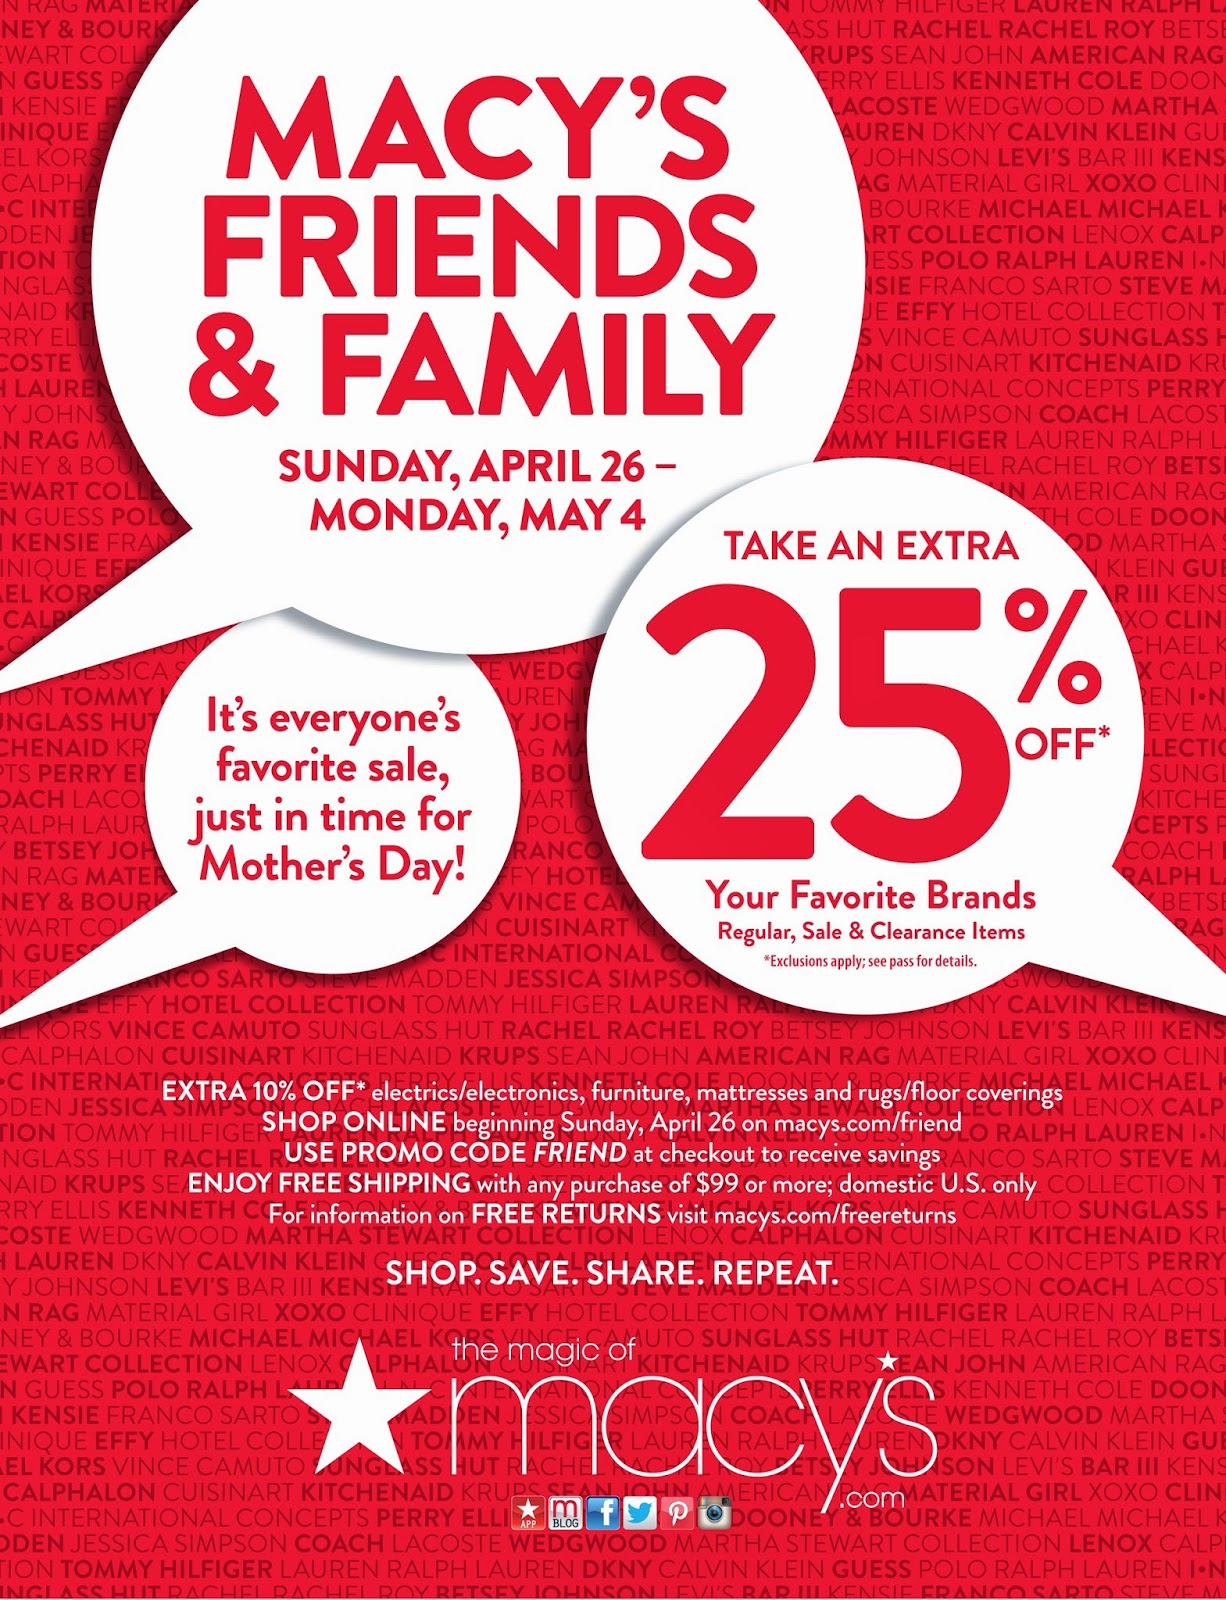 Macy's Herald Square Friends and Family sale